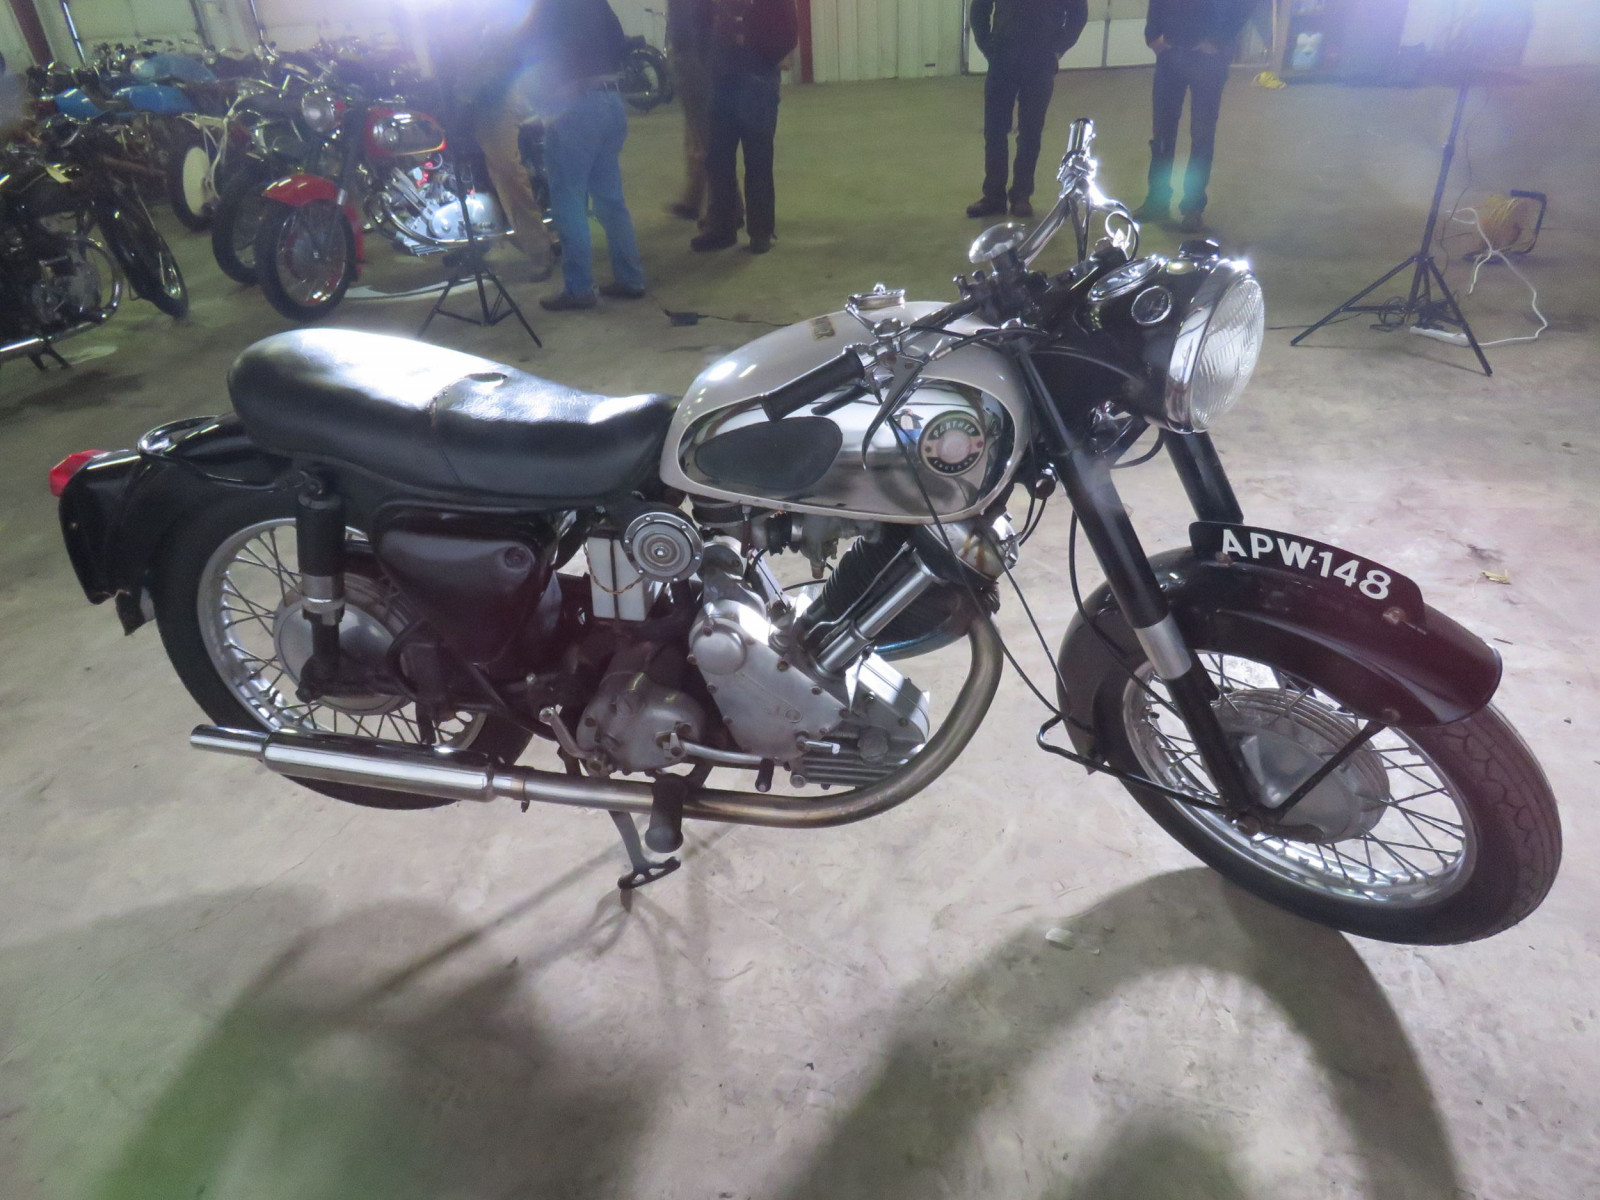 1960 Panther Model 120 Motorcycle - Image 3